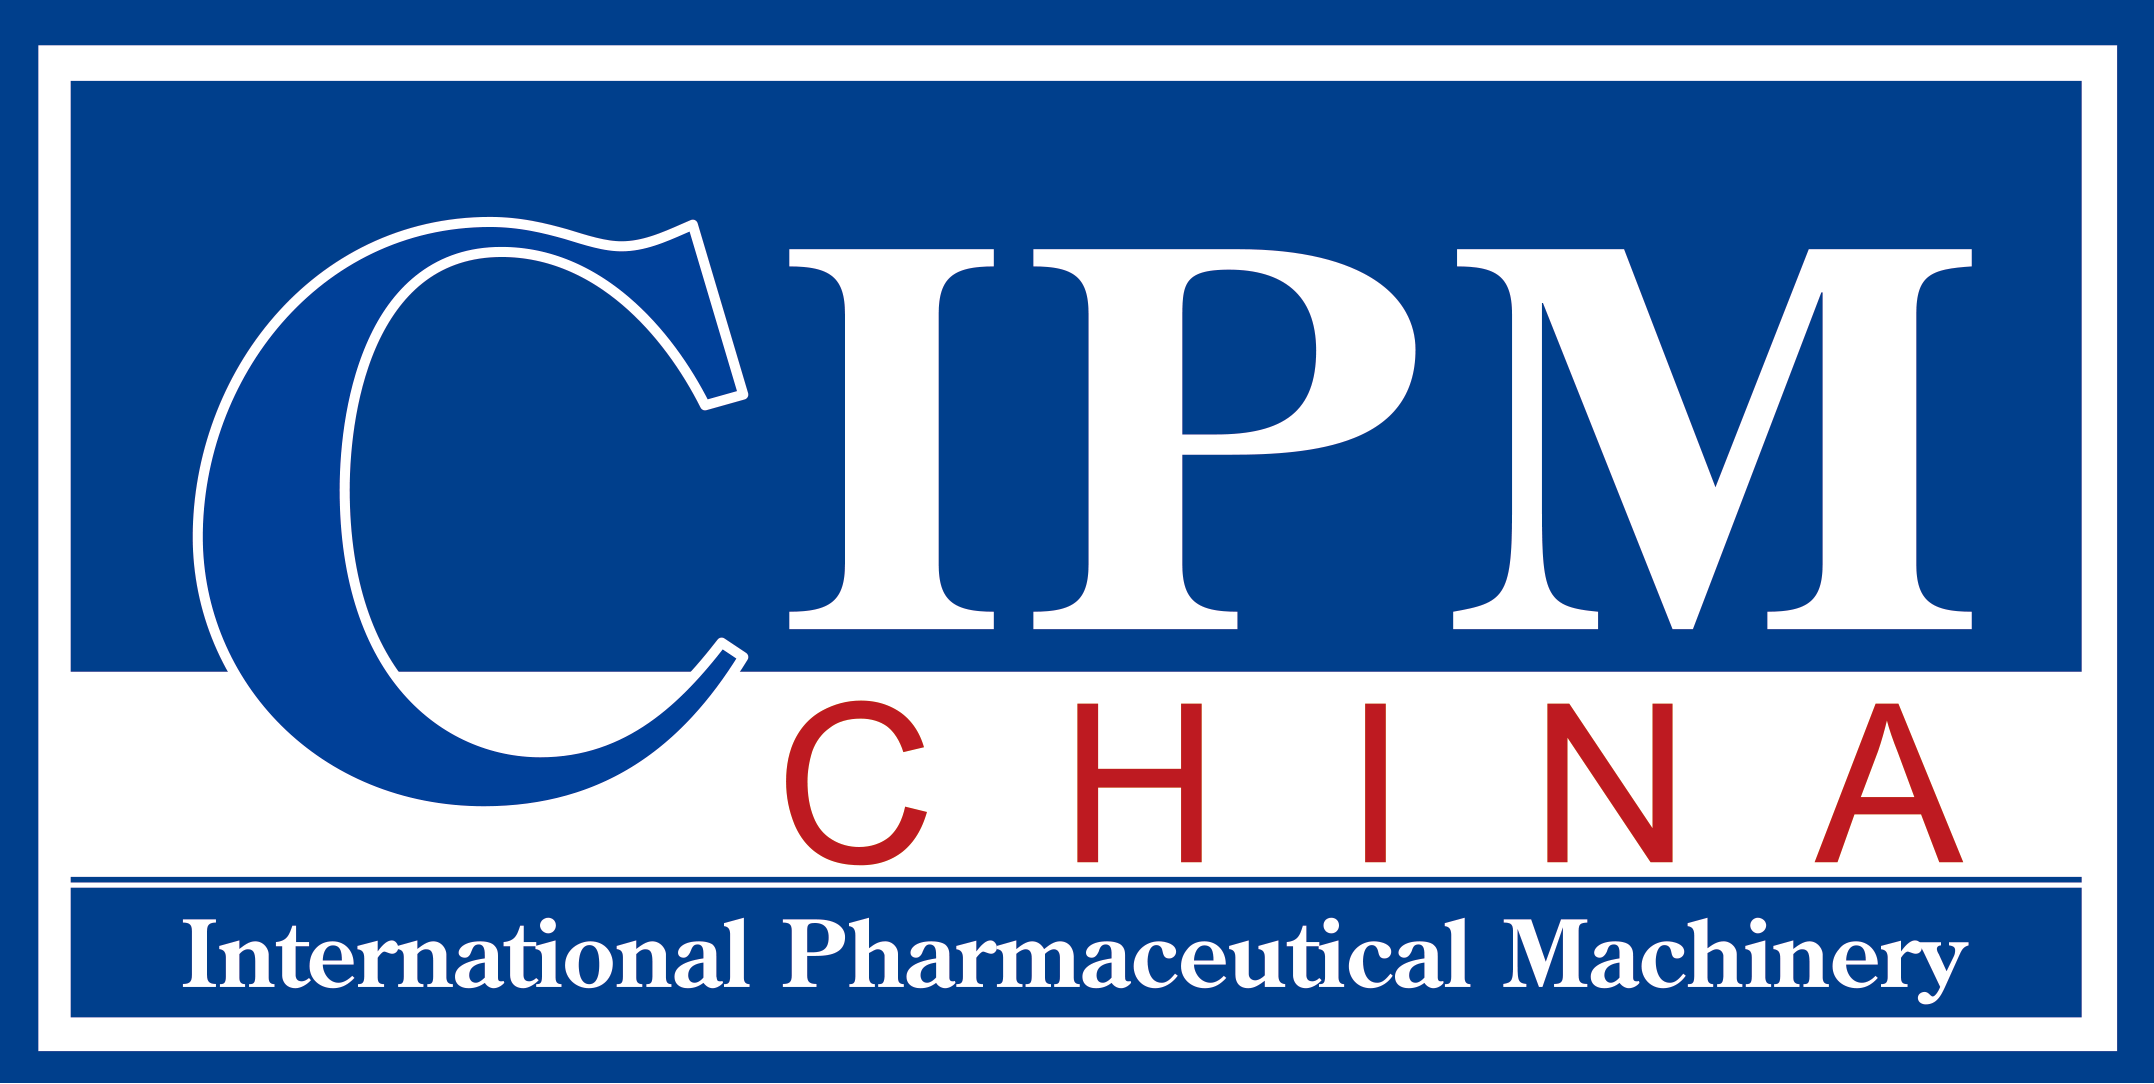 55th China International Pharmaceutical Machinery Exposition (2018 Spring CIPM)